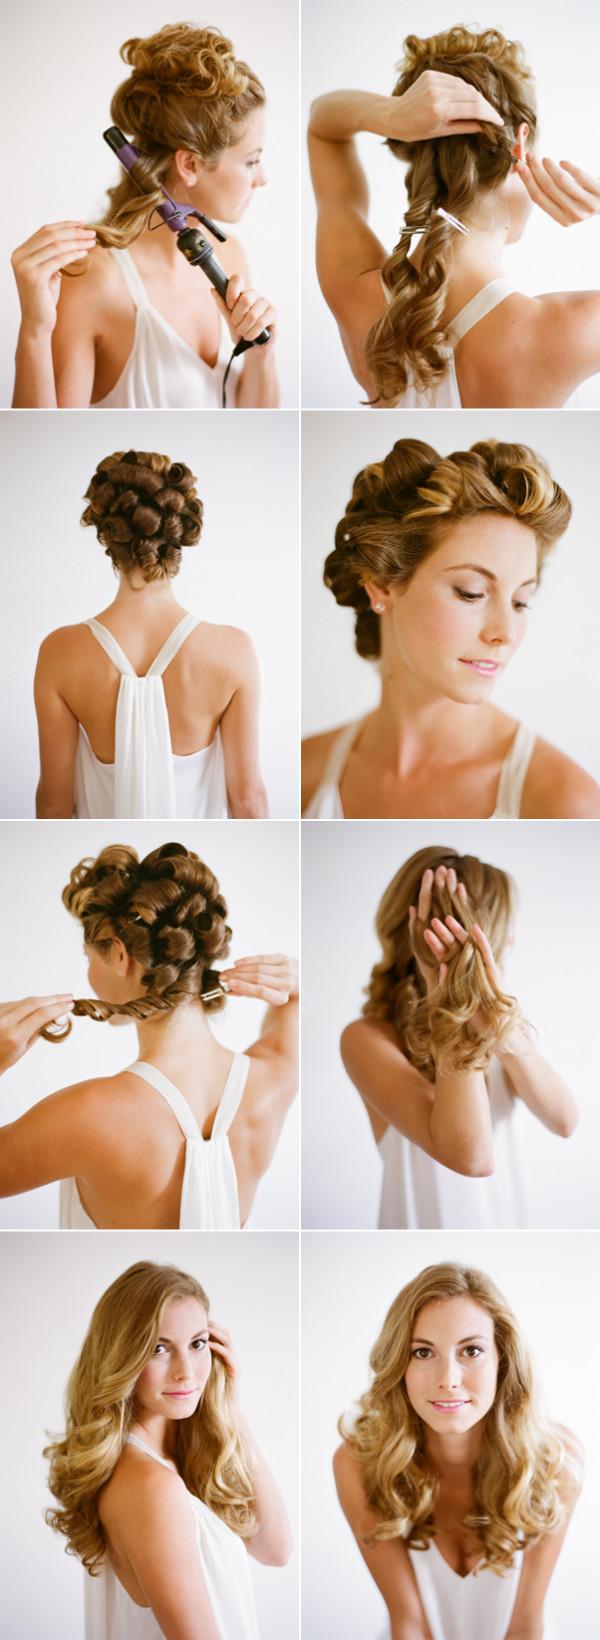 12 Fantastic Hairstyle Tutorials for Ladies - Pretty Designs